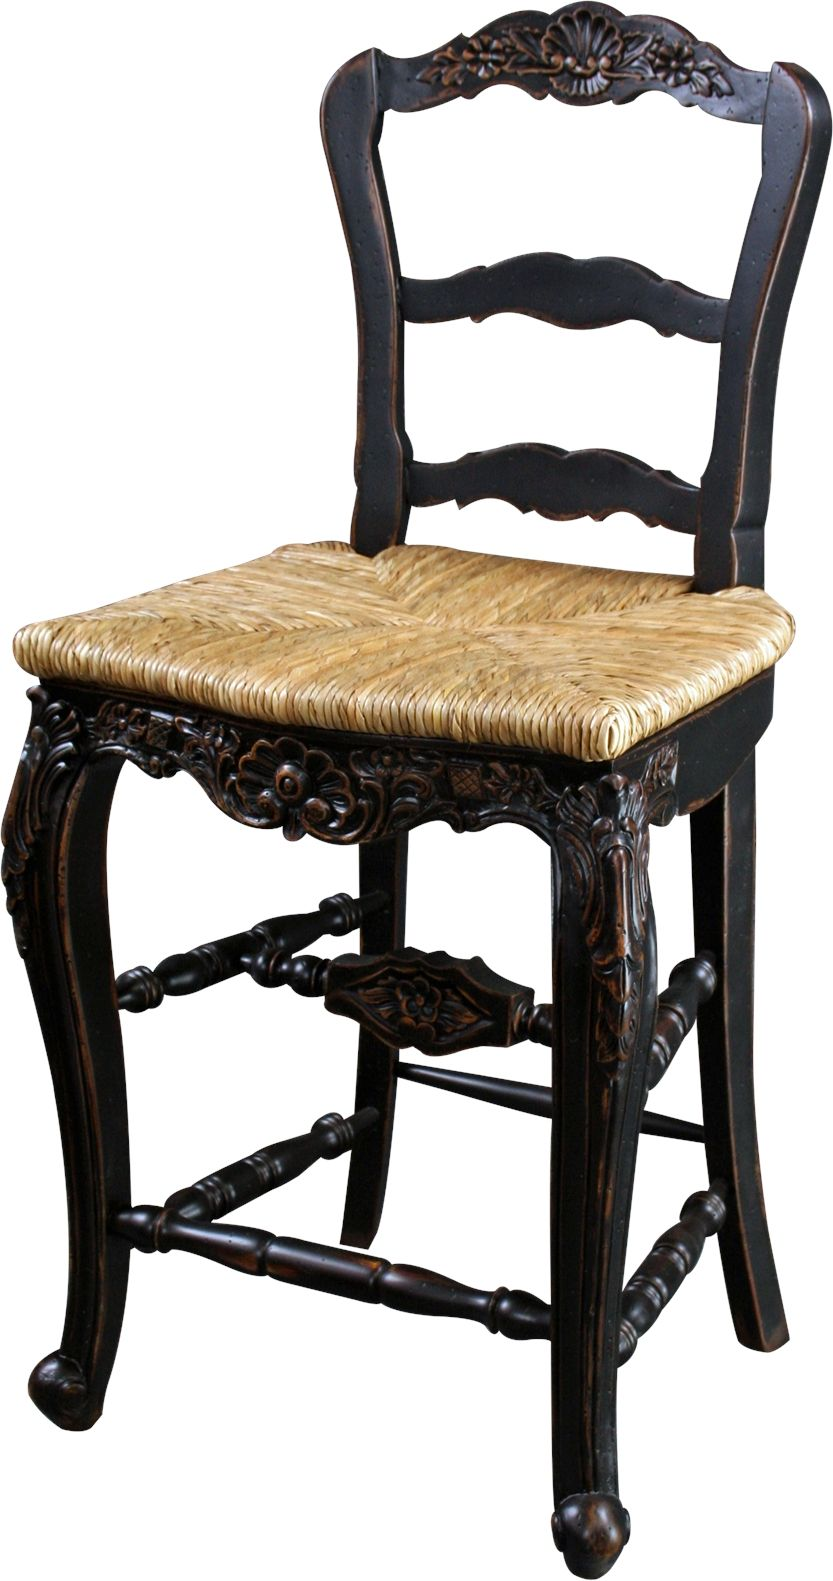 New Counter Height Stool Black French Country Rattan Sturdy Stretcher Cons Bg 31 French Country Farmhouse Country Bar Stools Country Farmhouse